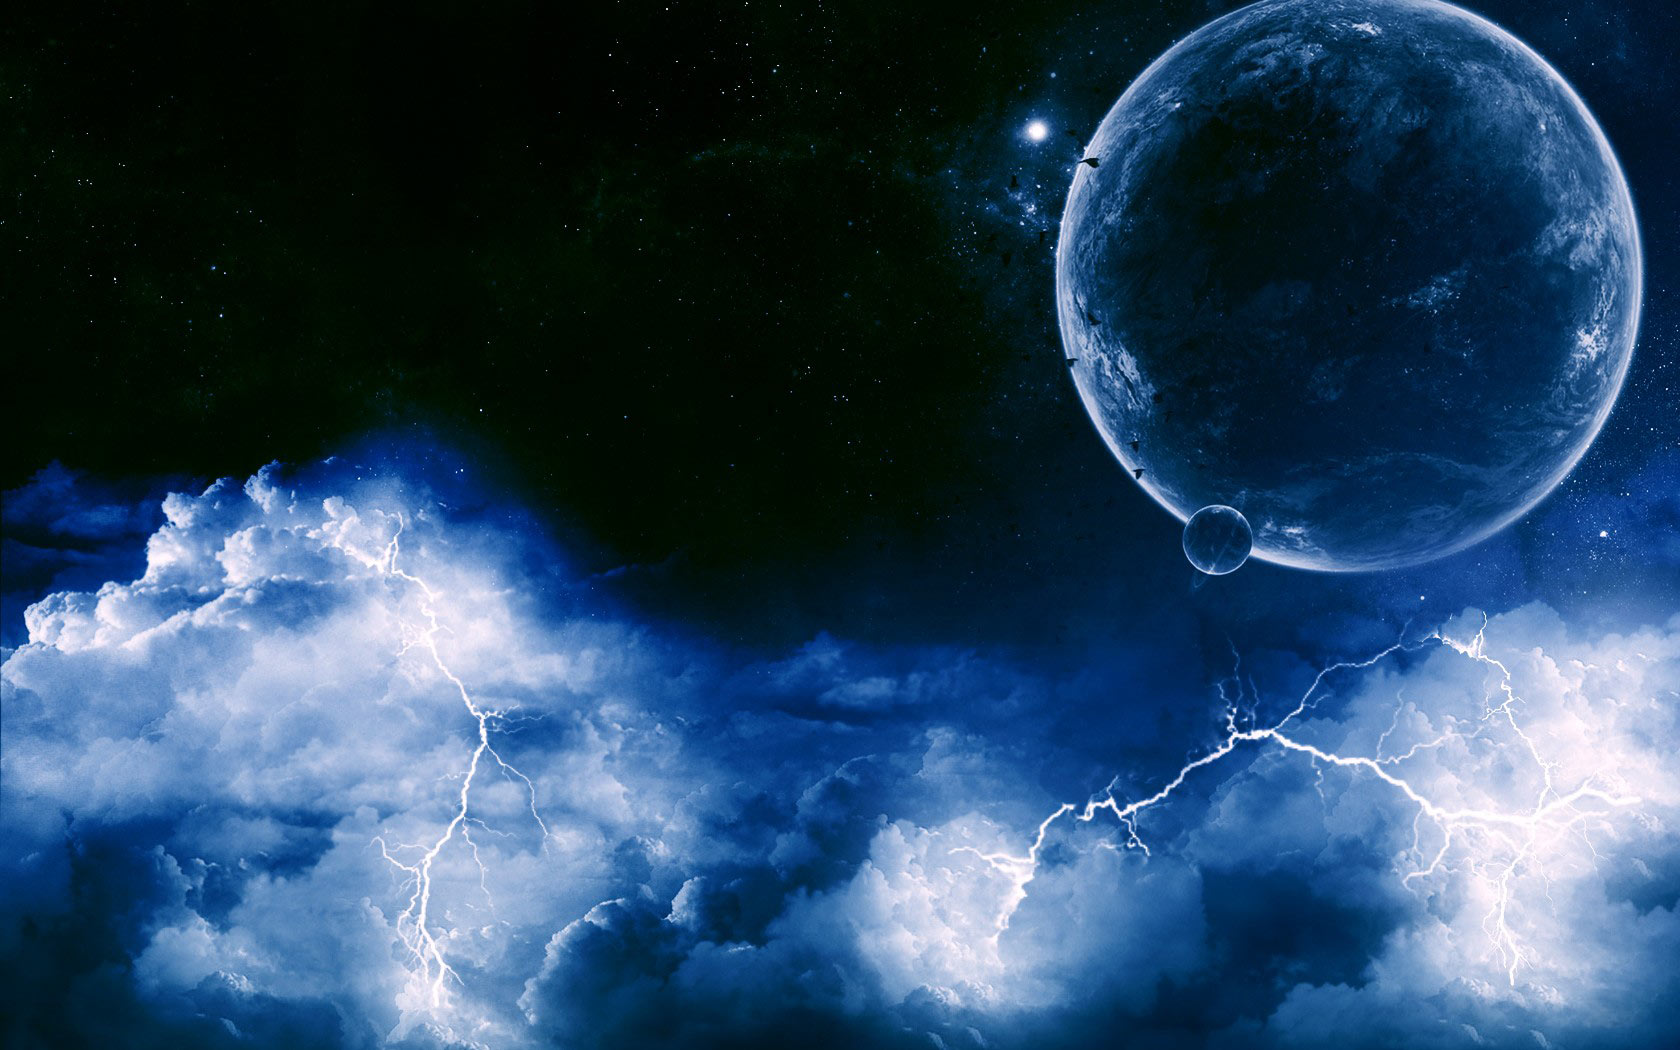 space wallpapers 7